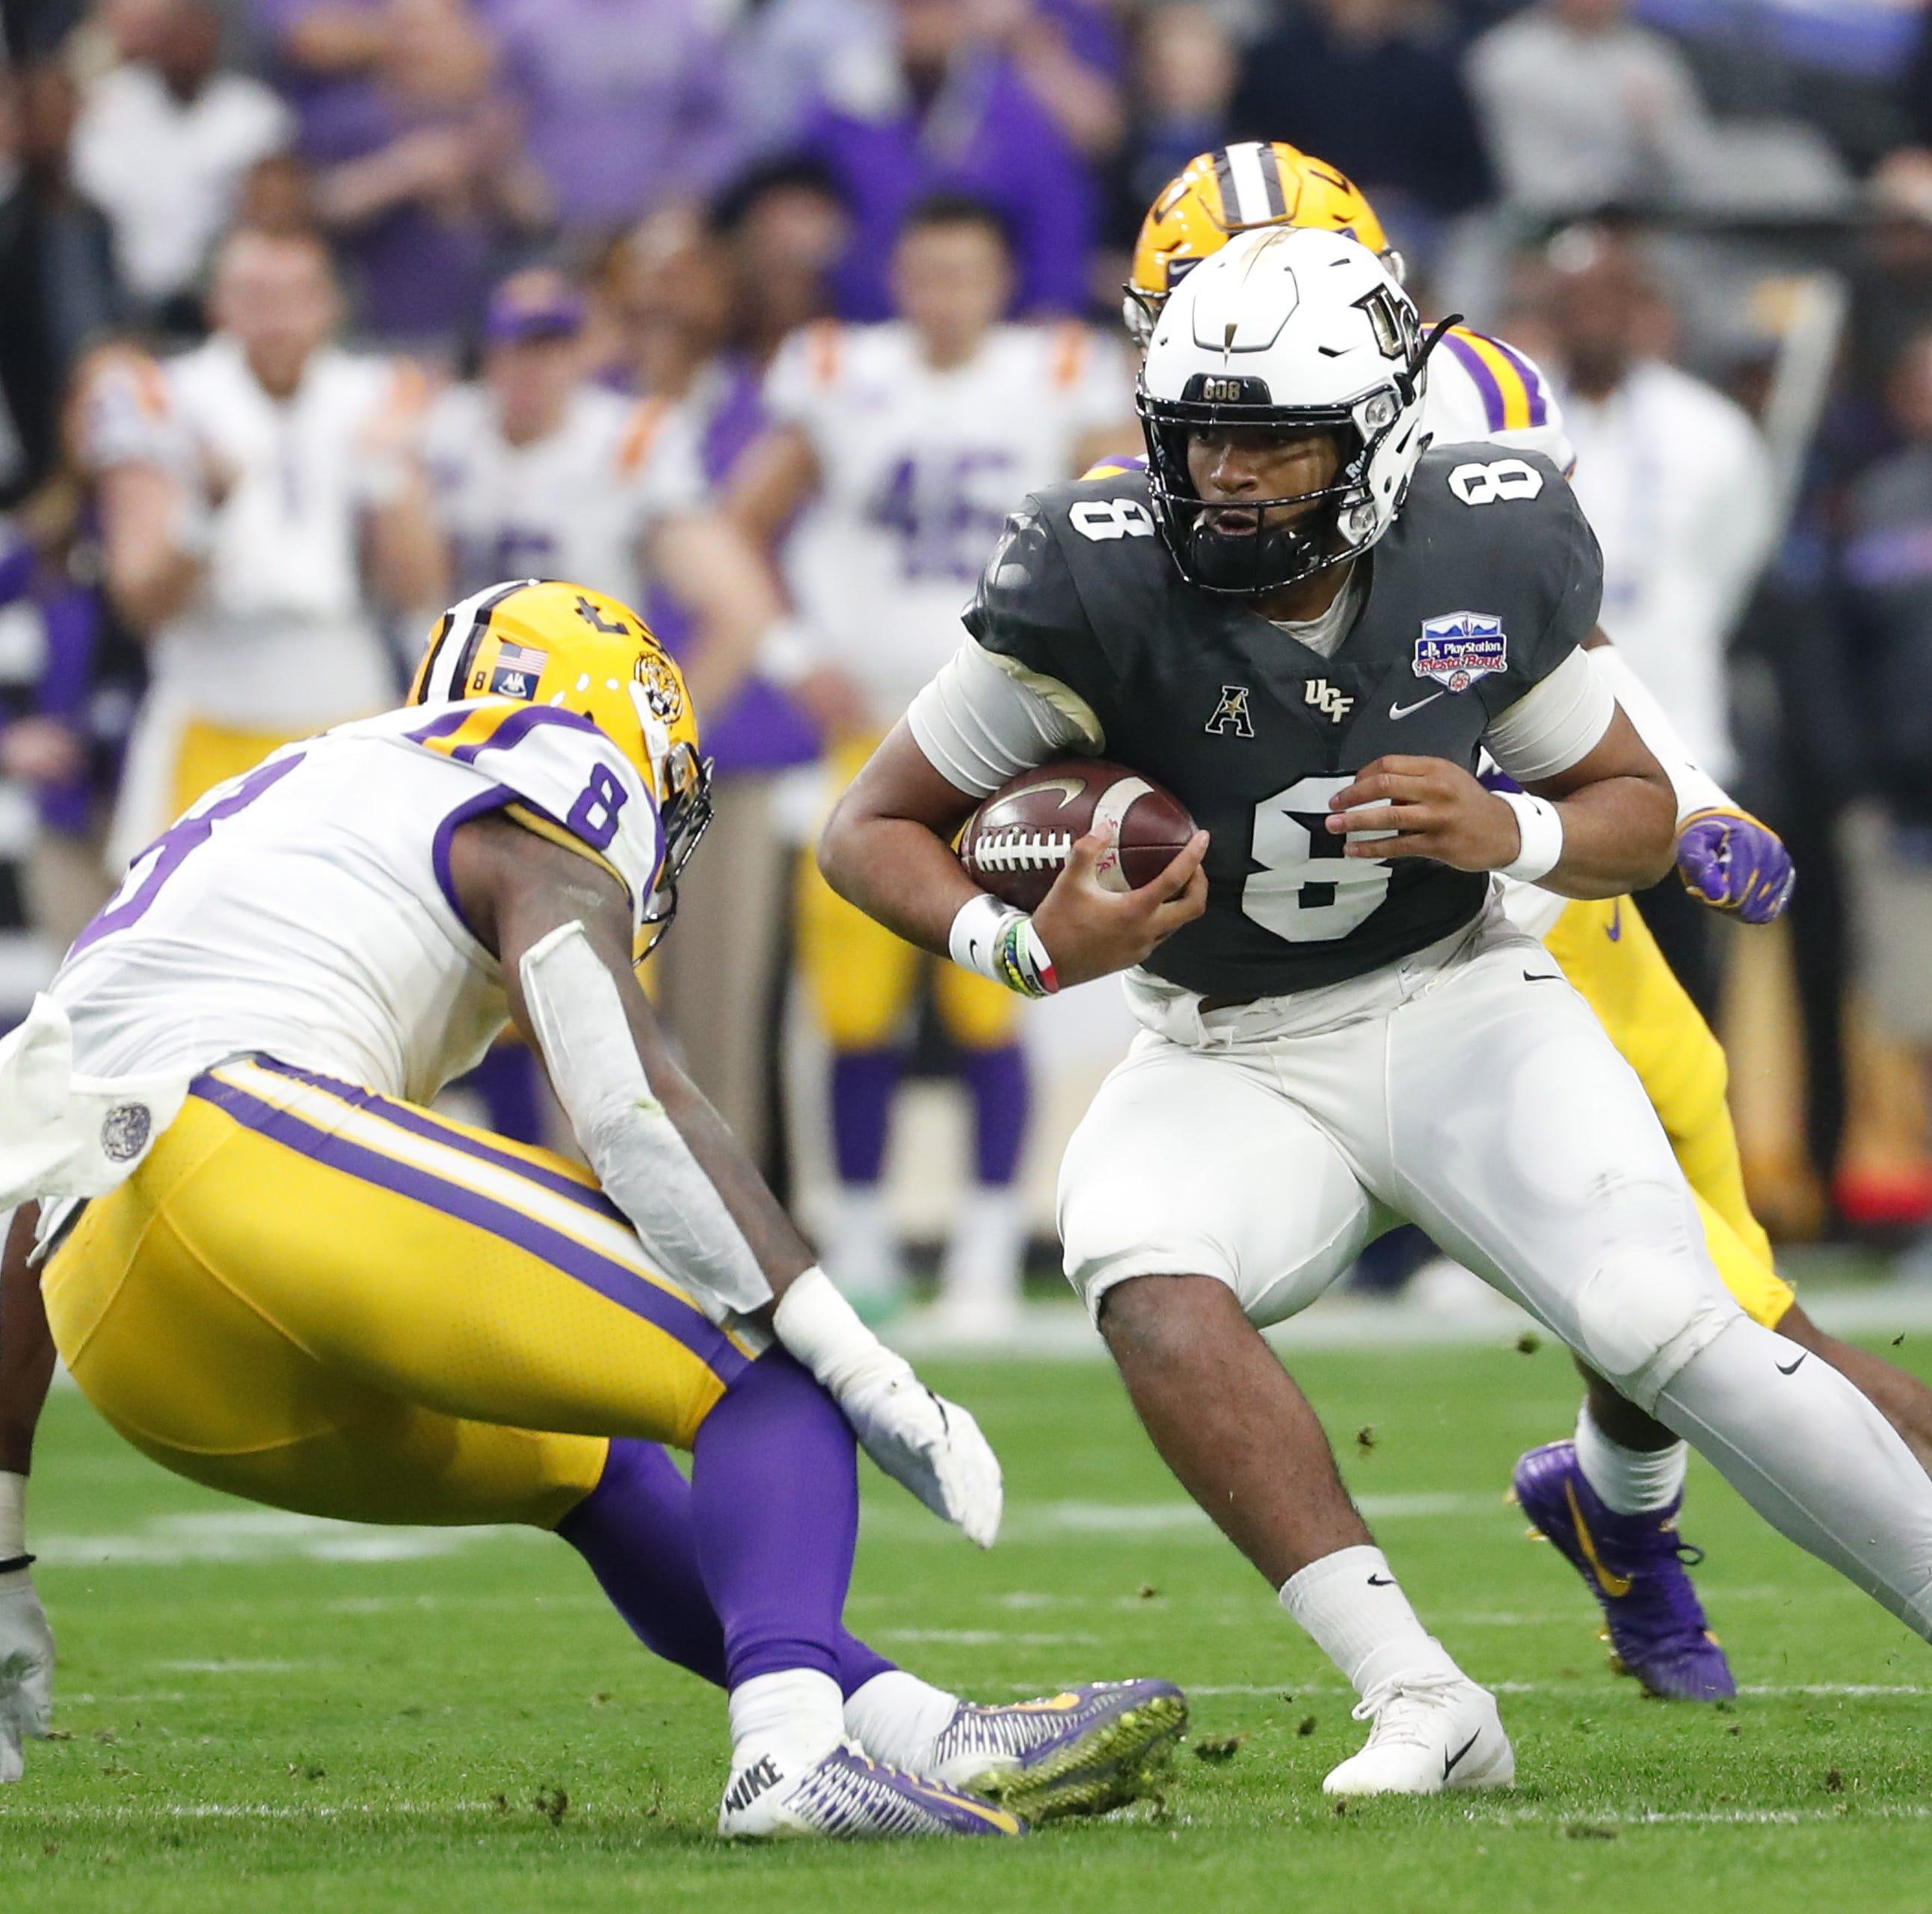 UCF fails to take advantage of LSU's depleted defensive personnel